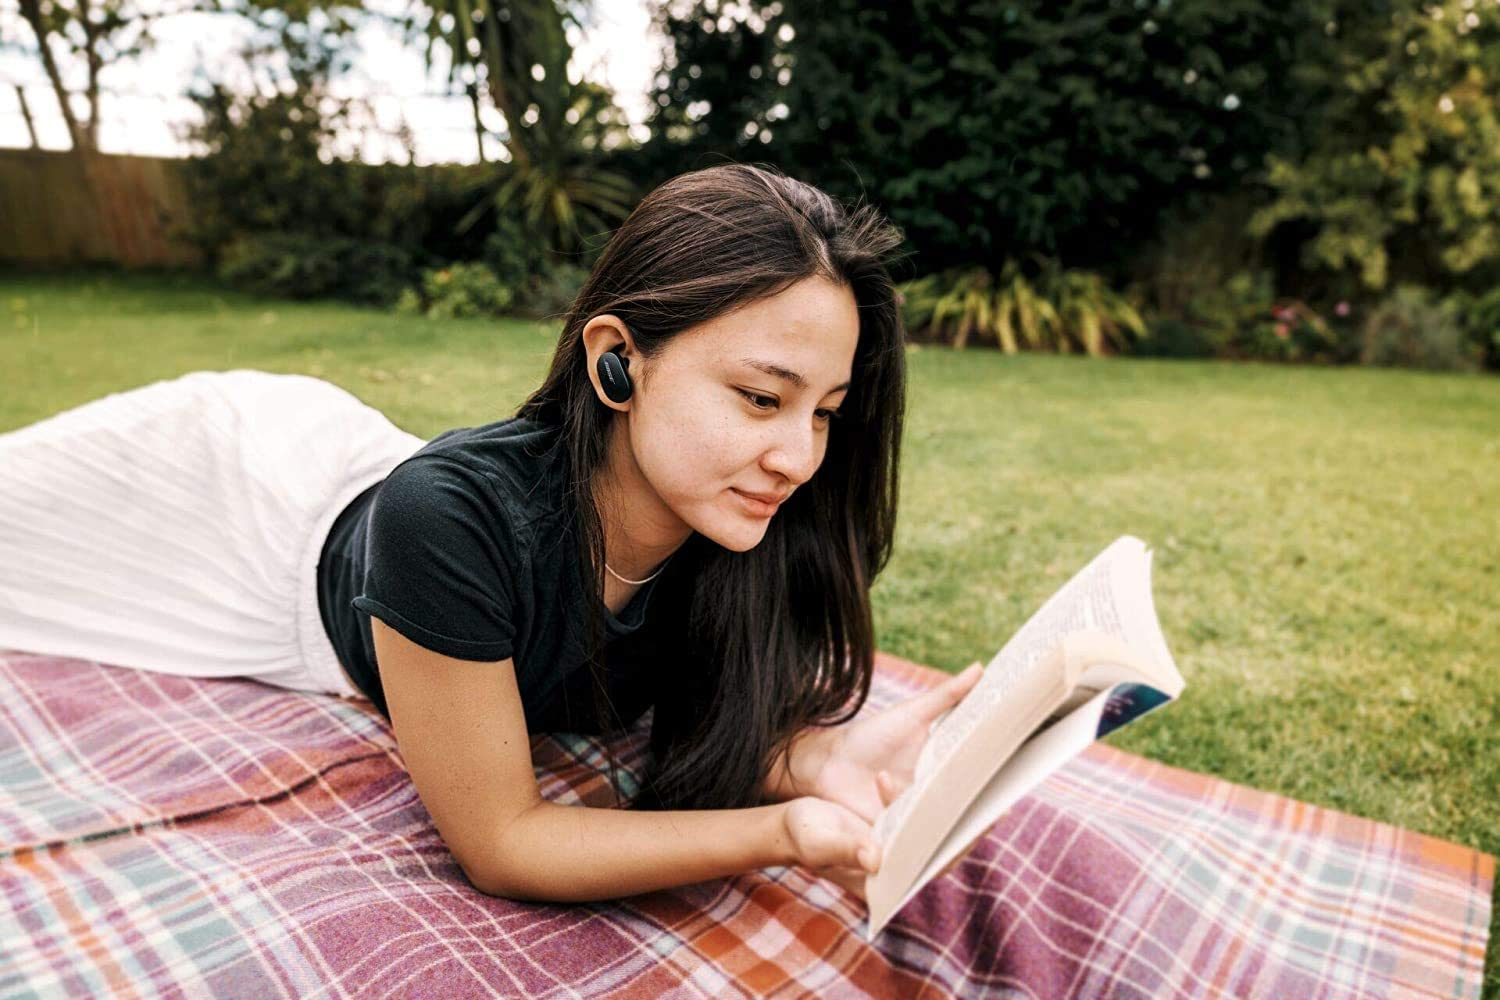 woman with earbuds reading a book